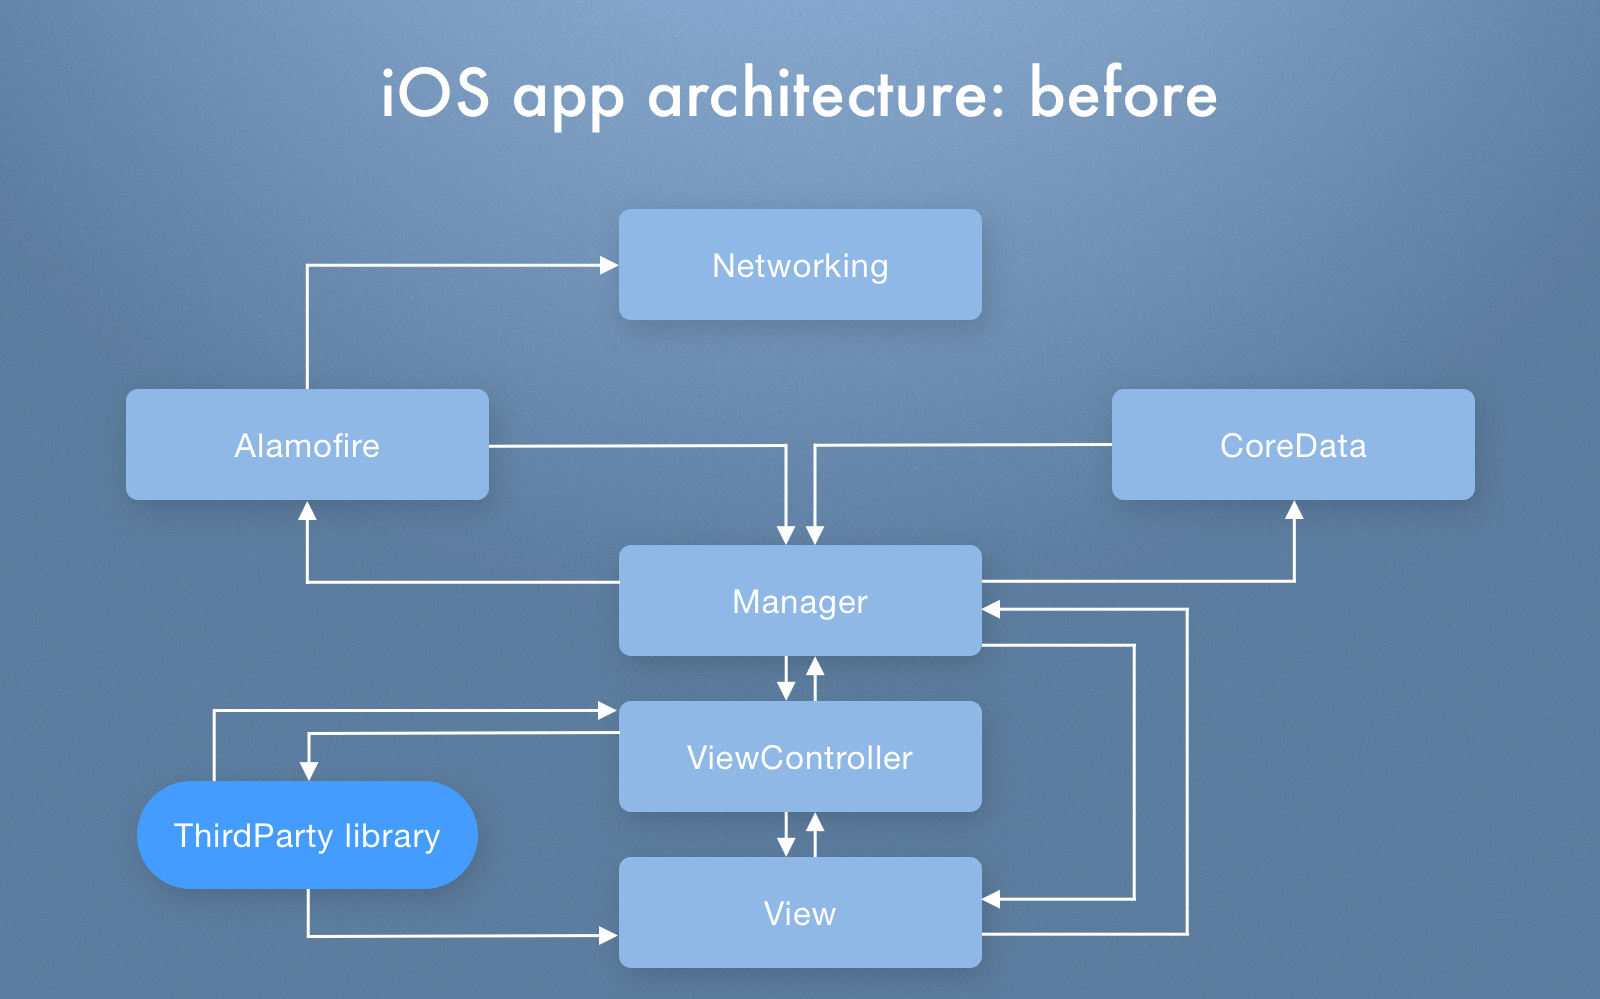 iOS app architecture before